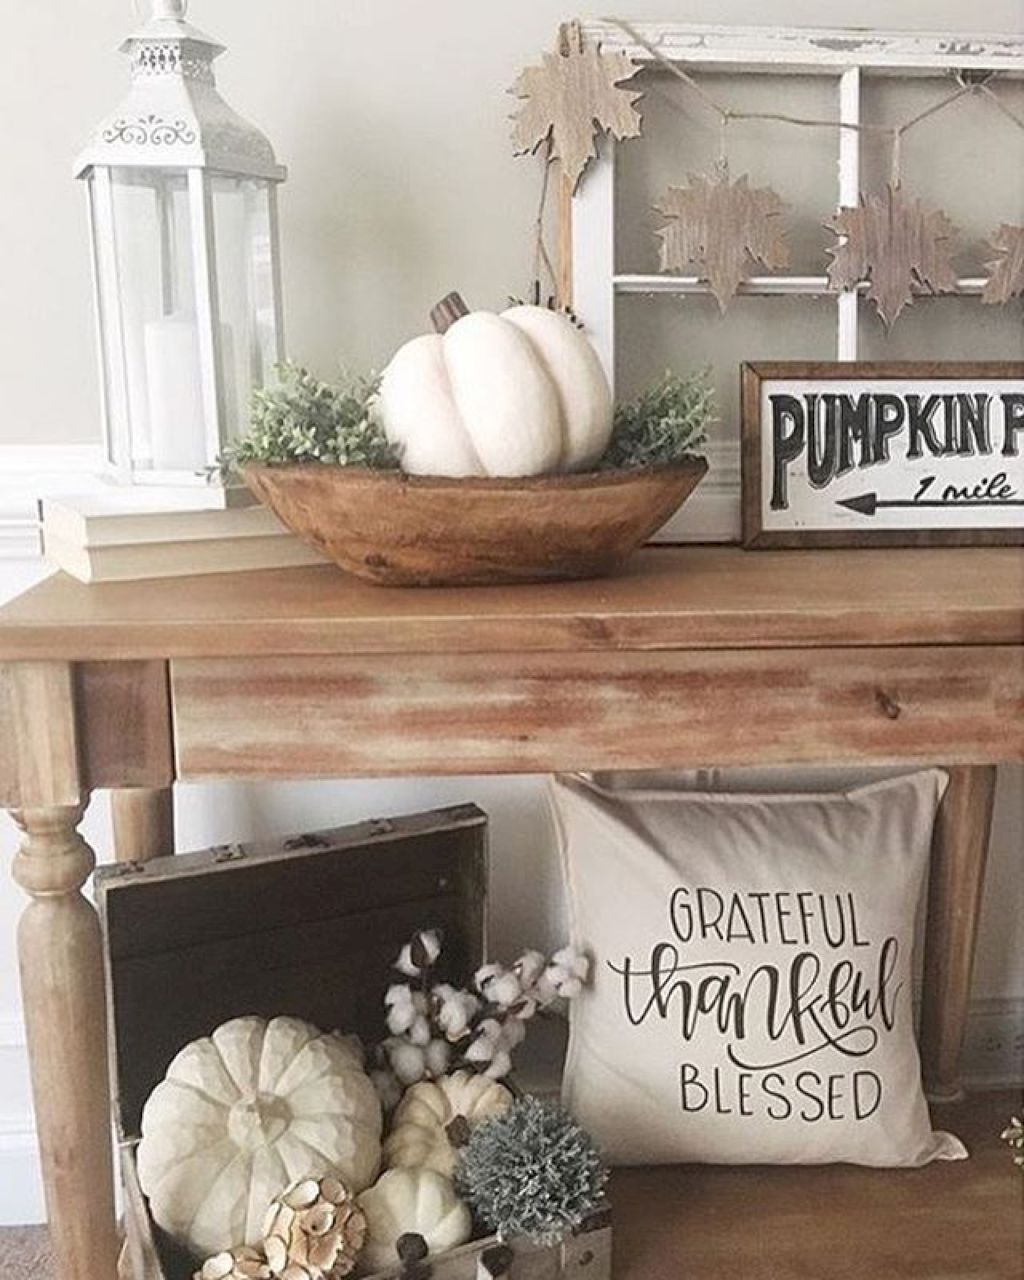 50 Luxurious Crafty Diy Farmhouse Fall Decor Ideas #falldecorideas